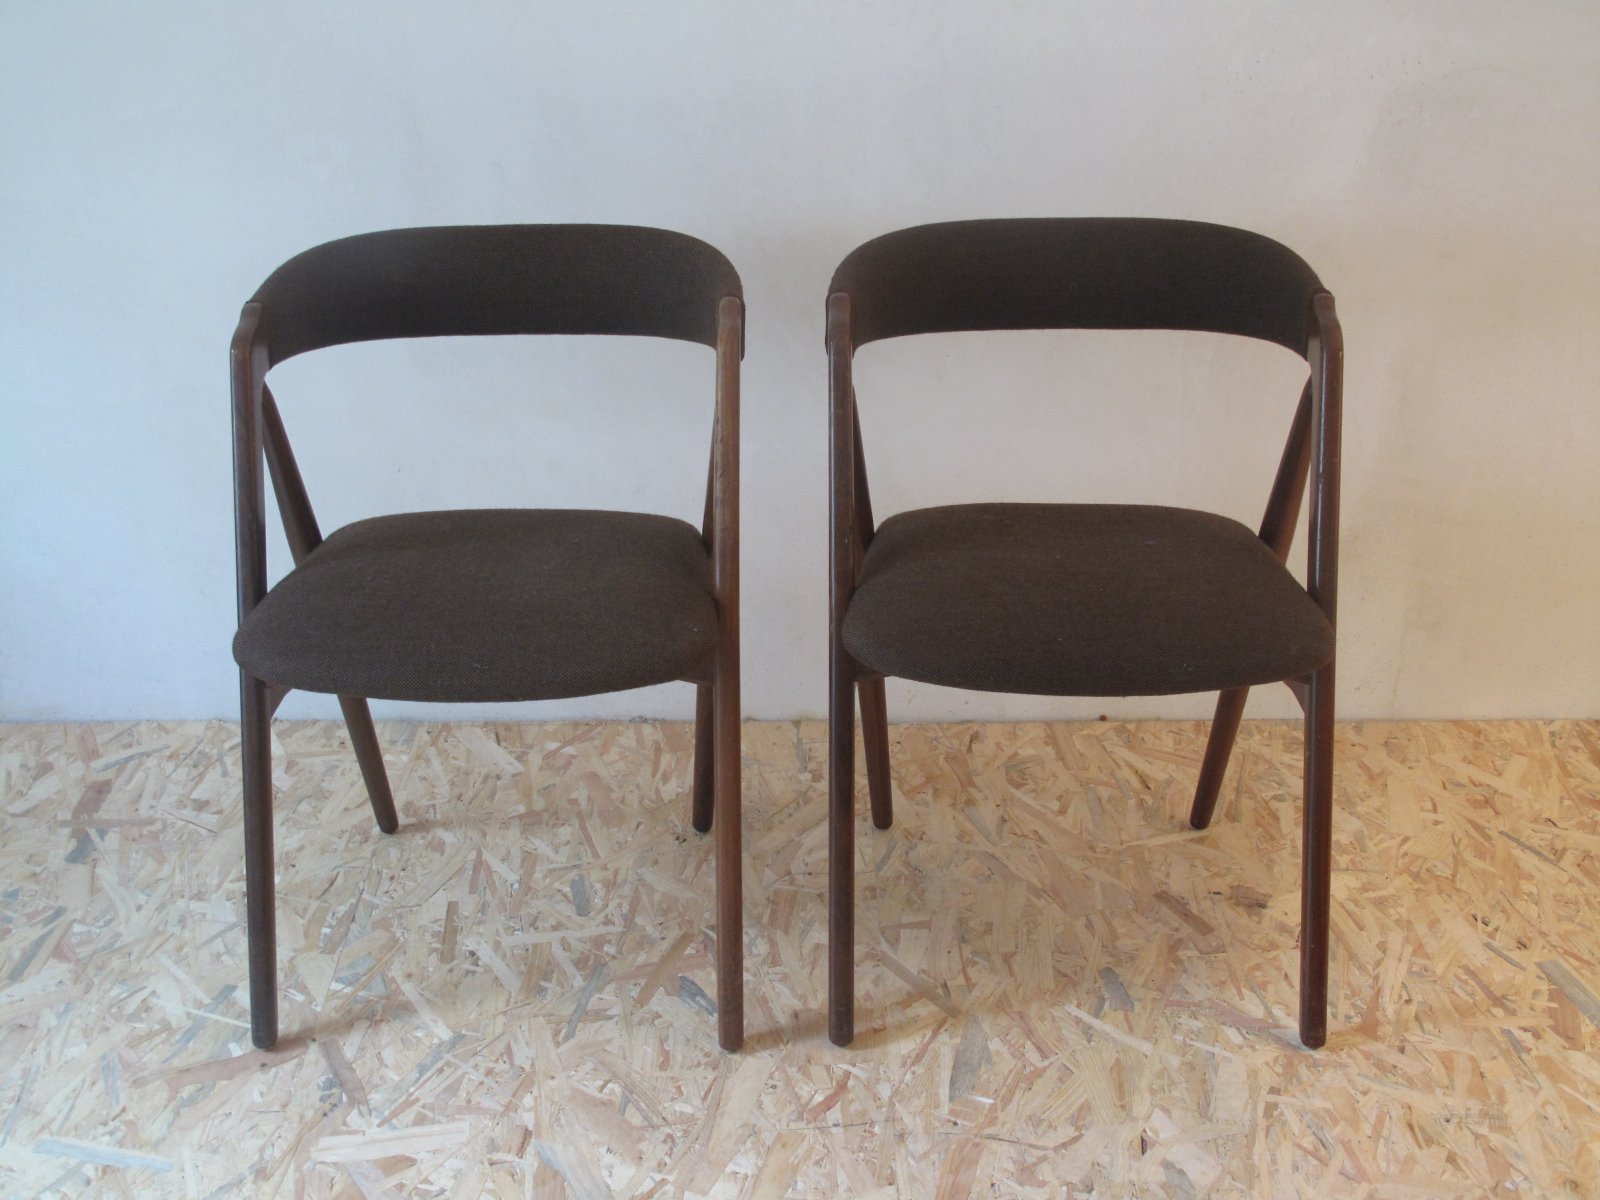 Dining Chairs By Kai Kristiansen 1960s Set Of 2 For Sale At Pamono